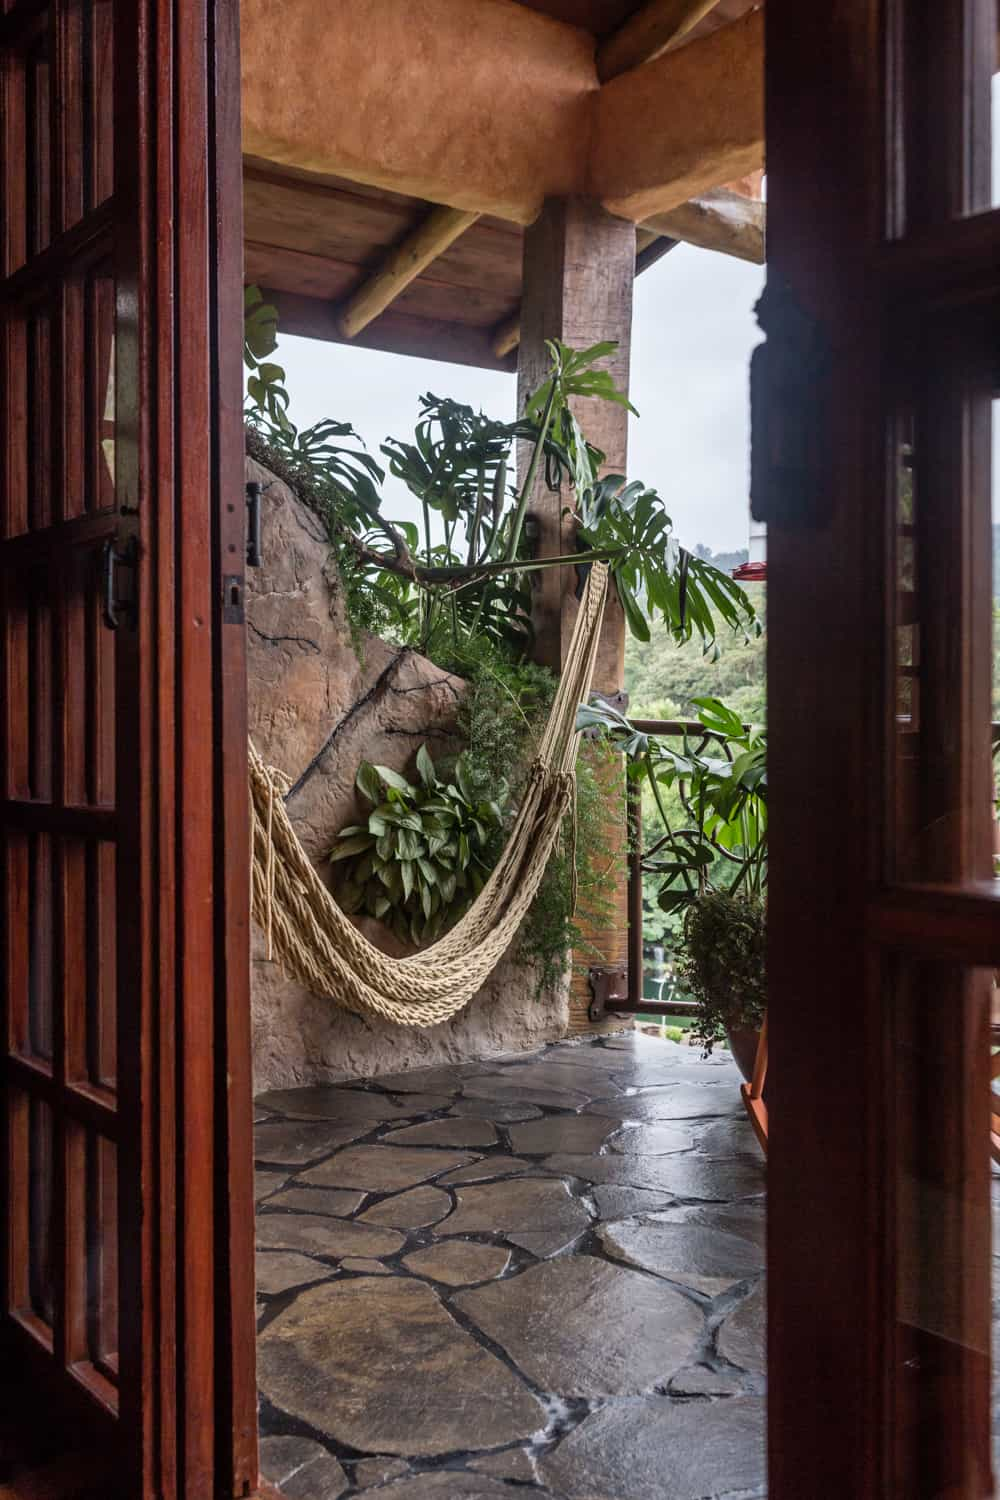 Doorway to balcony with hammock in suite for newlyweds in Costa Rica.